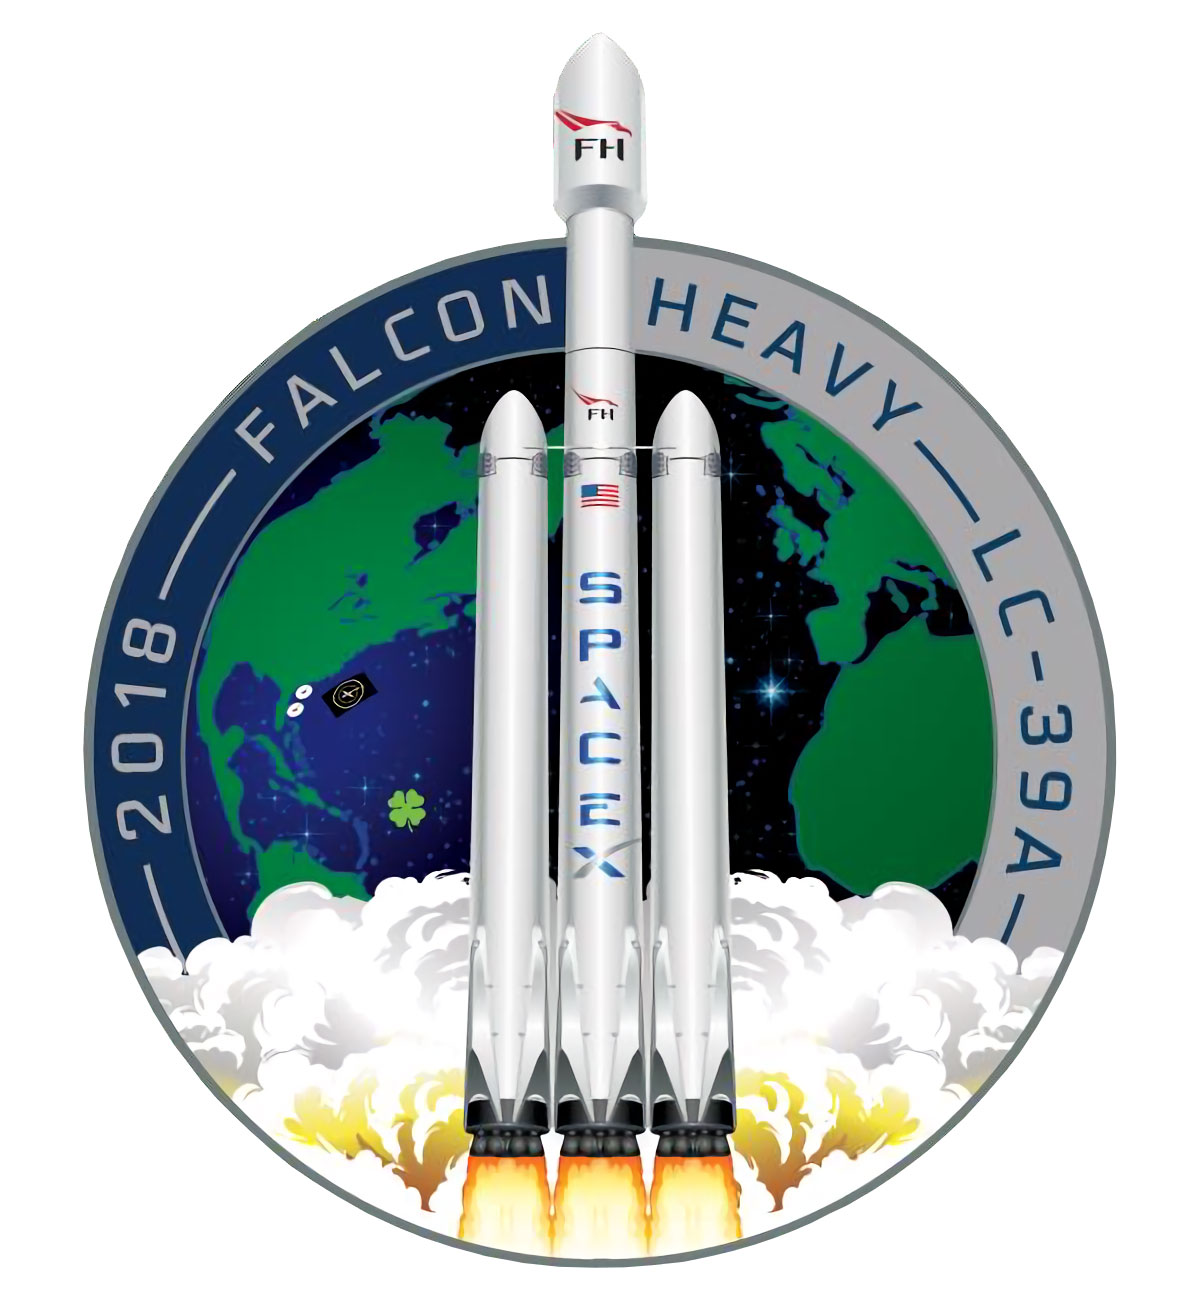 SpaceX Falcon Heavy demo mission patch - collectSPACE ...